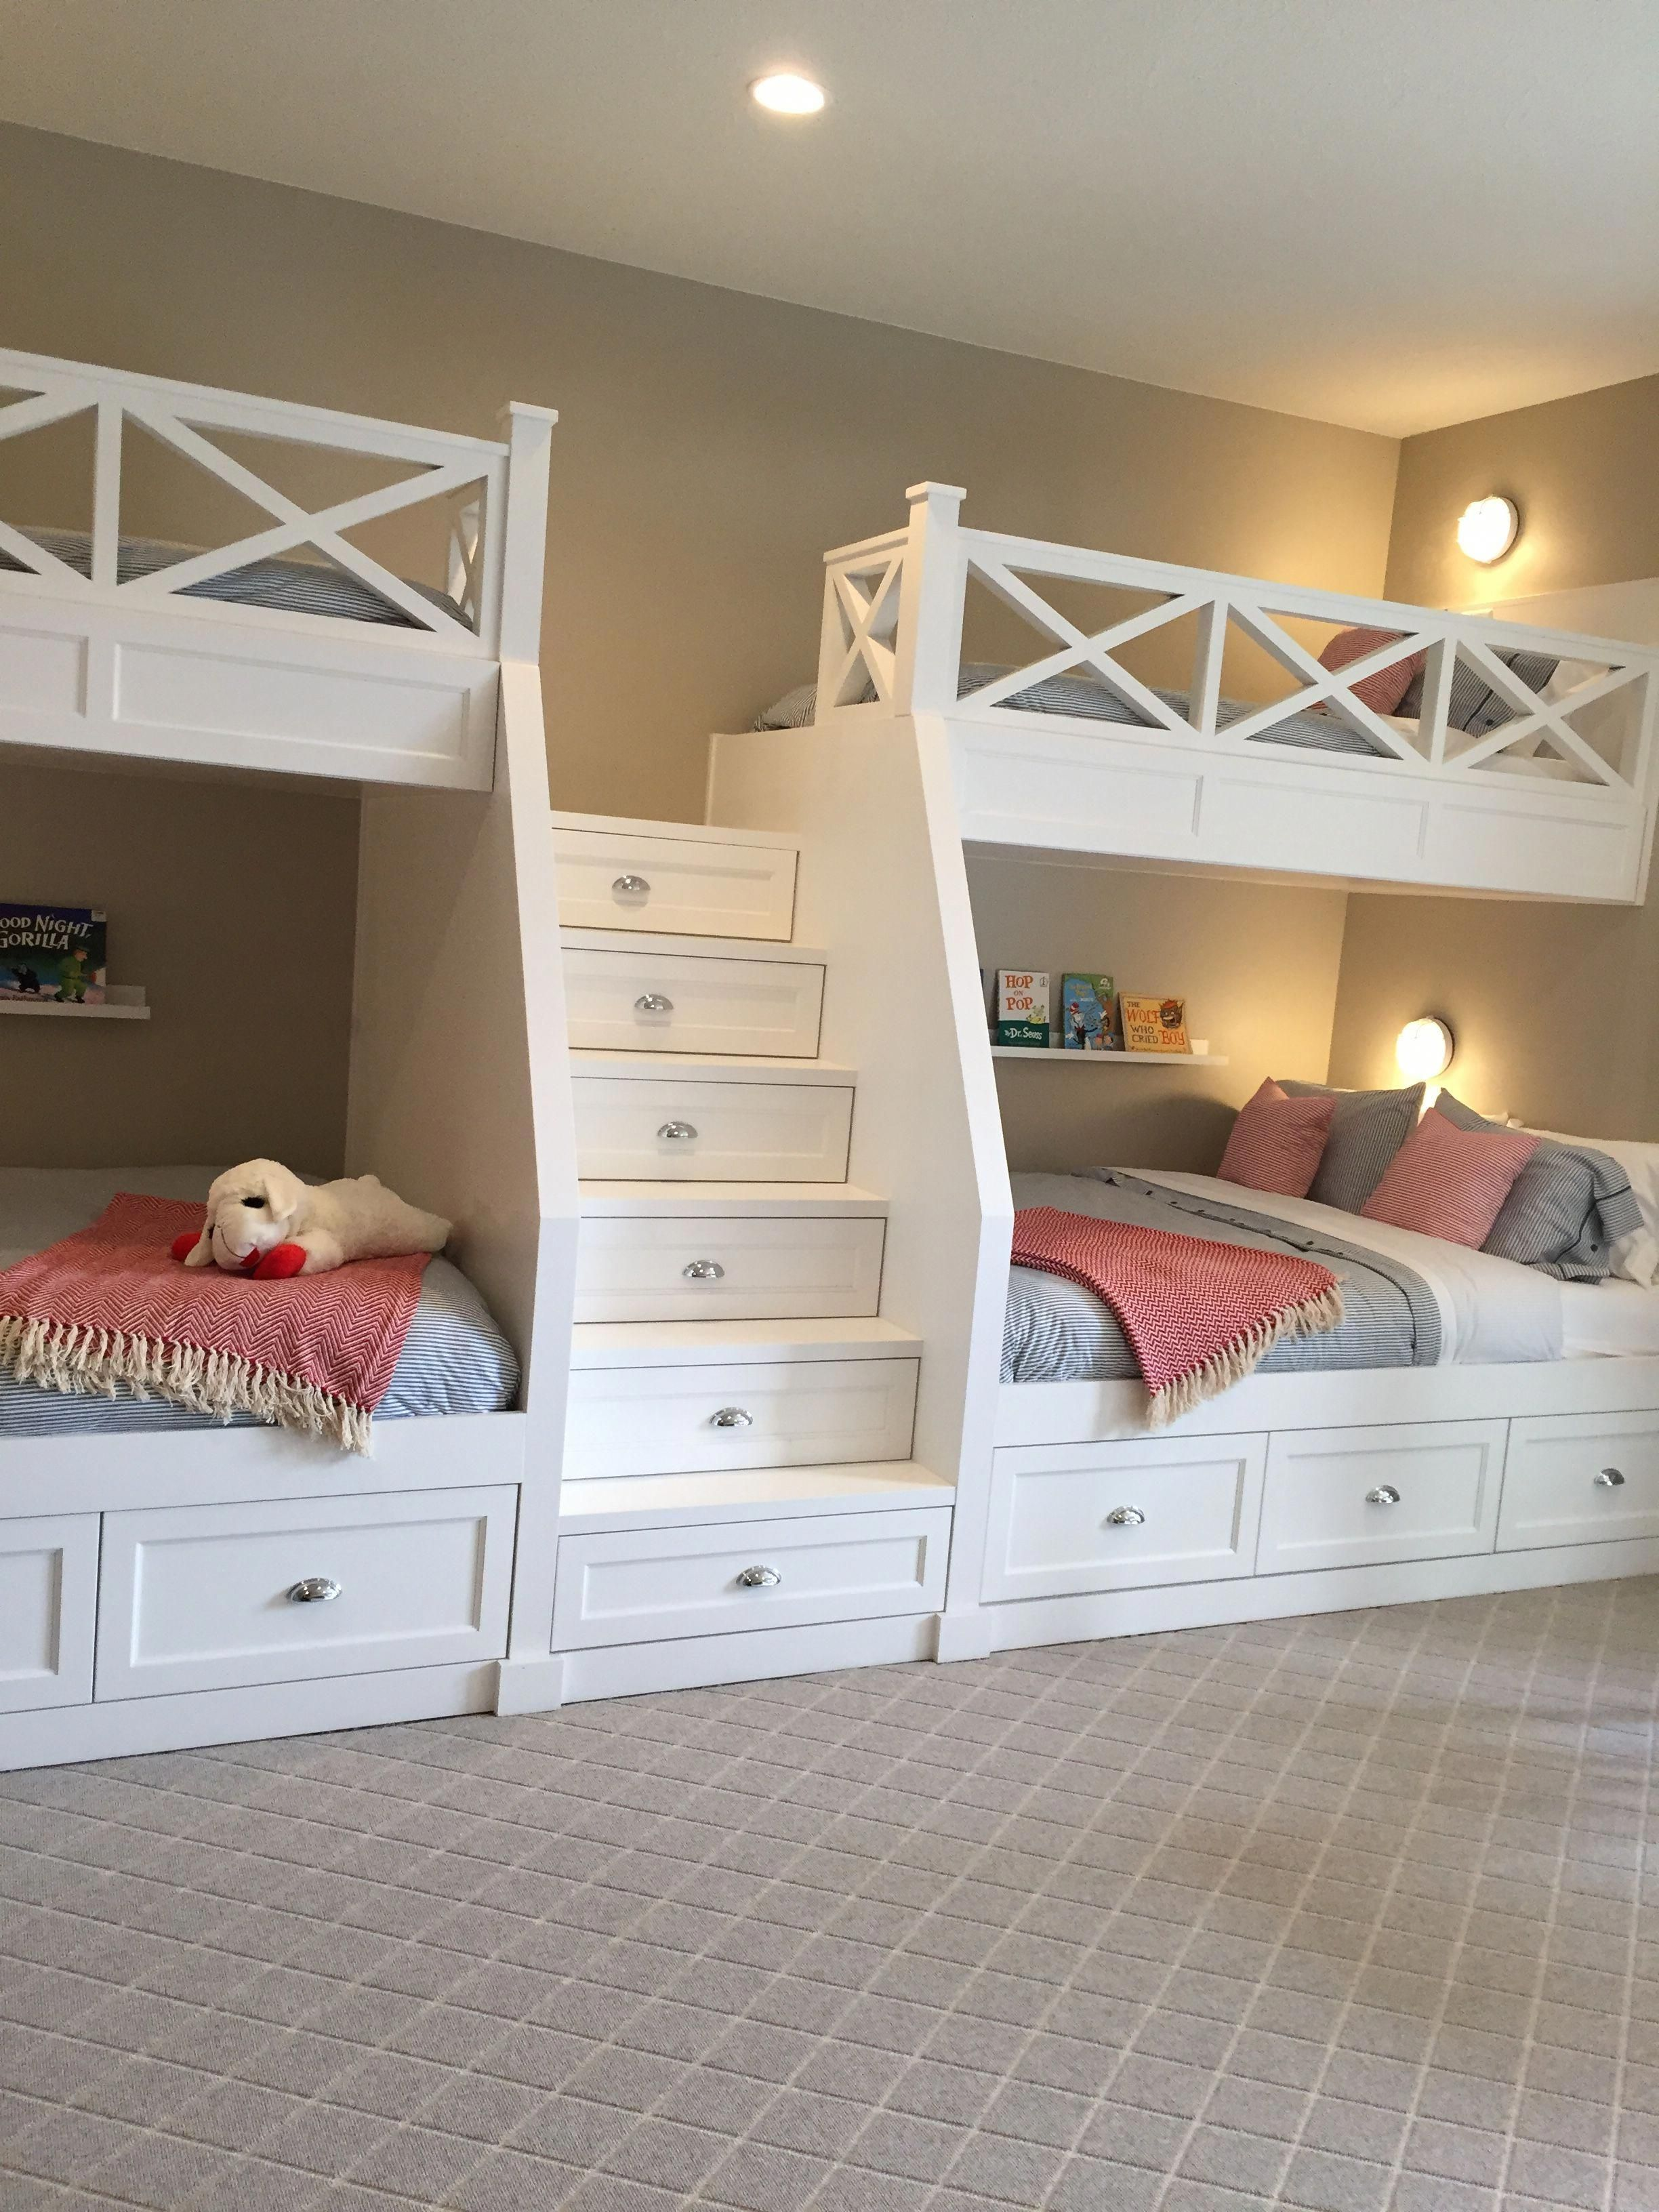 Outstanding Modern Bunk Beds For Girls Room Information Is Offered On Our Internet Site Read Girl Bedroom Decor Bed For Girls Room Bunk Beds For Girls Room